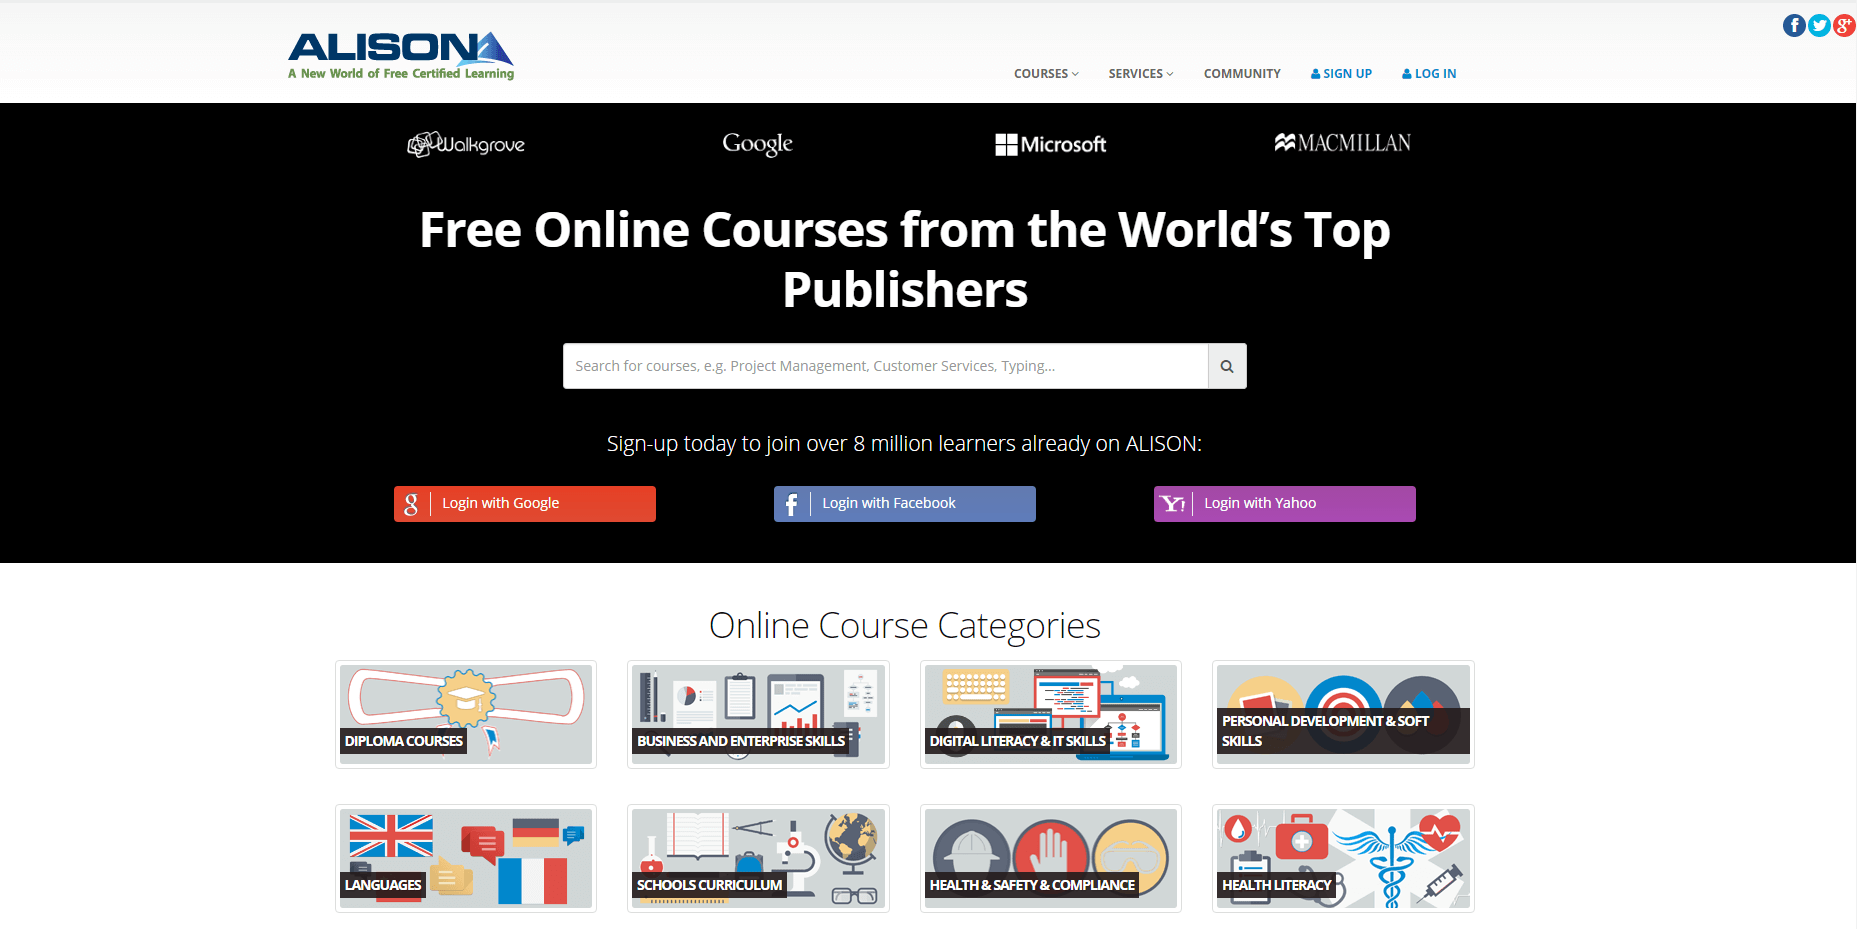 Top 10 places for free online learning | The pCloud Blog